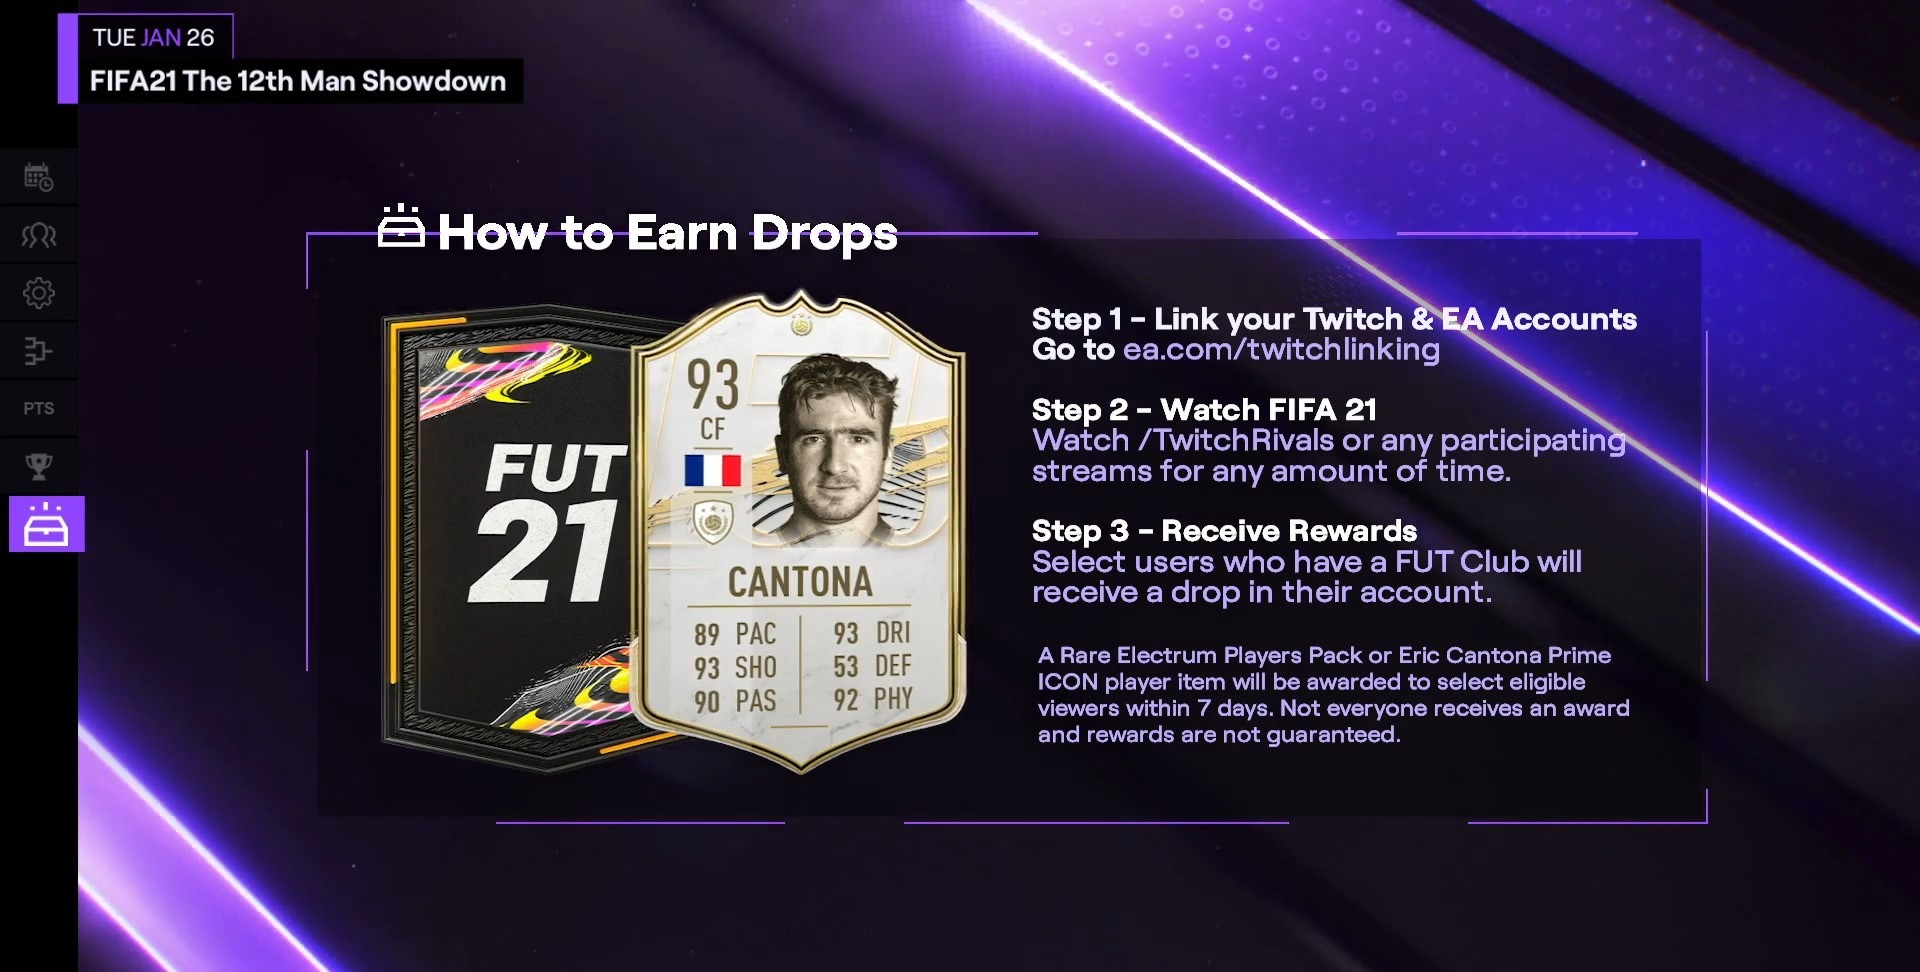 The controversial striker has been praised as the one who brought back the trophies to one of the world's most famous soccer clubs. Twitch Rivals On Twitter We Ve Got Fifa21 Drops Today For A Chance To Earn One 1 Link Your Twitch Ea Accounts Https T Co Tltzybv6iw 2 Watch The 12th Man Showdown At Https T Co Q8hdbsfuw4 Or